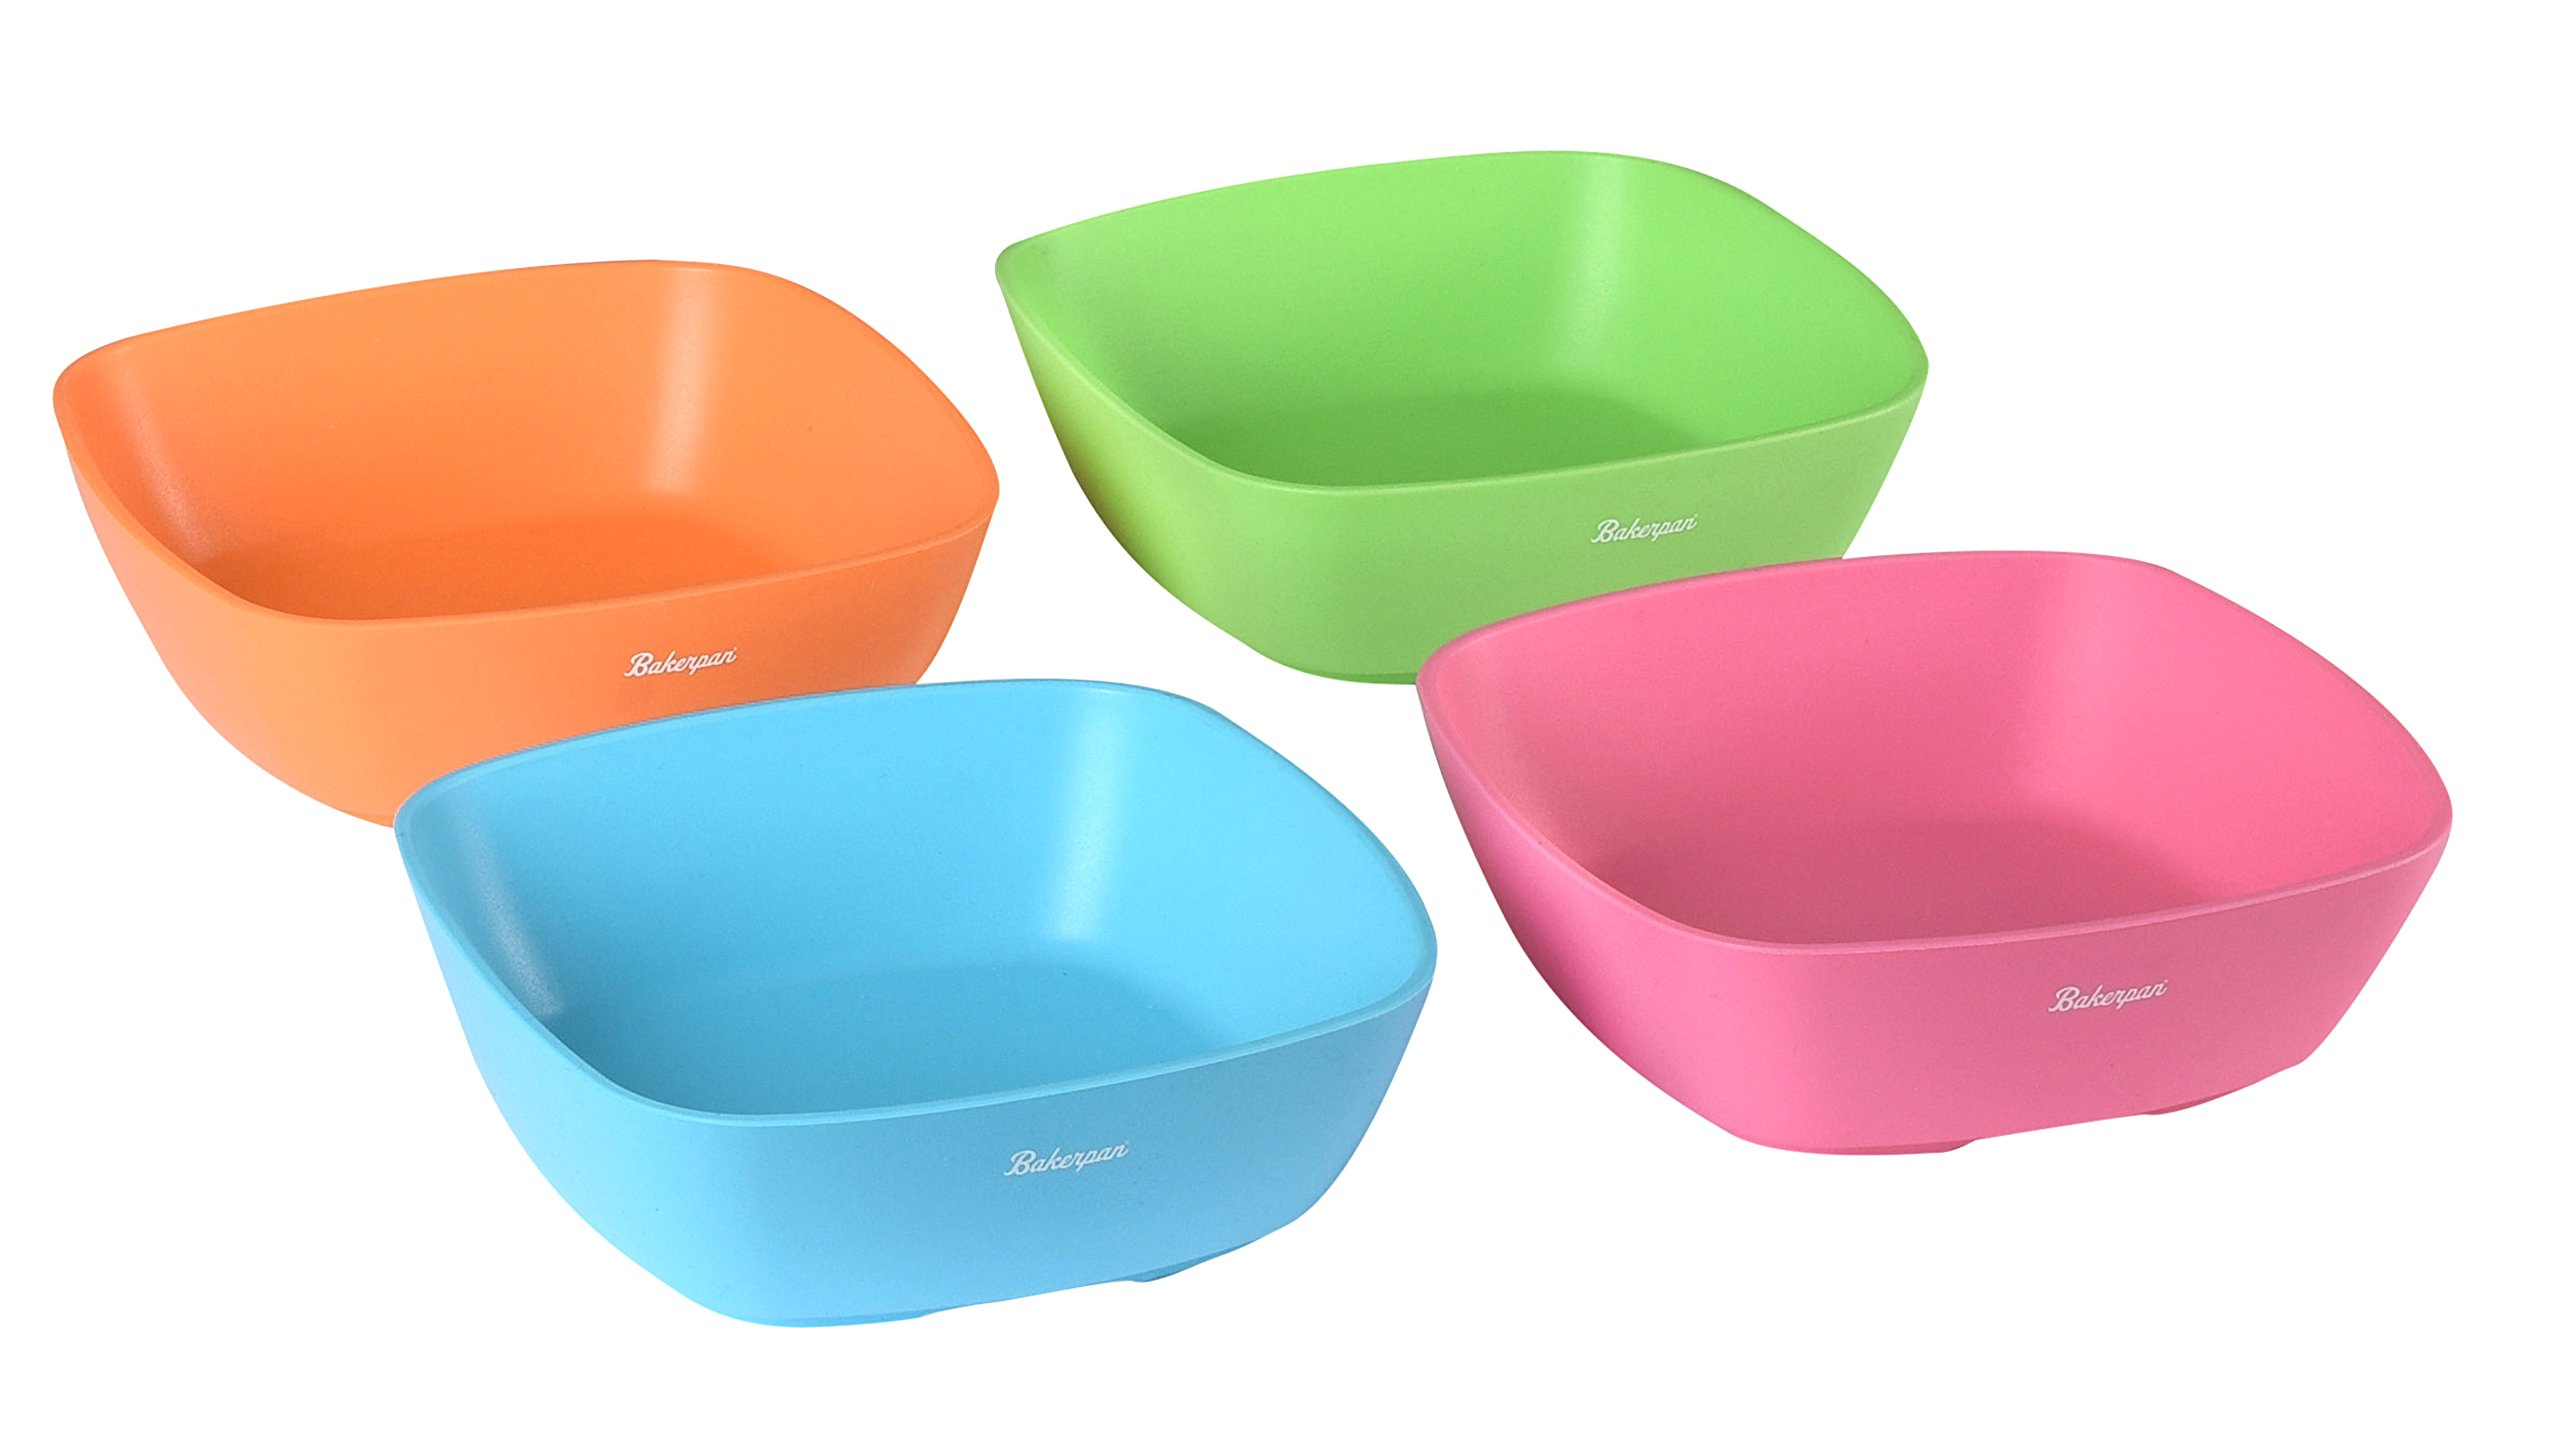 Bakerpan Silicone Toddler Square Feeding Bowl, Set of 4 (Multi) by Bakerpan